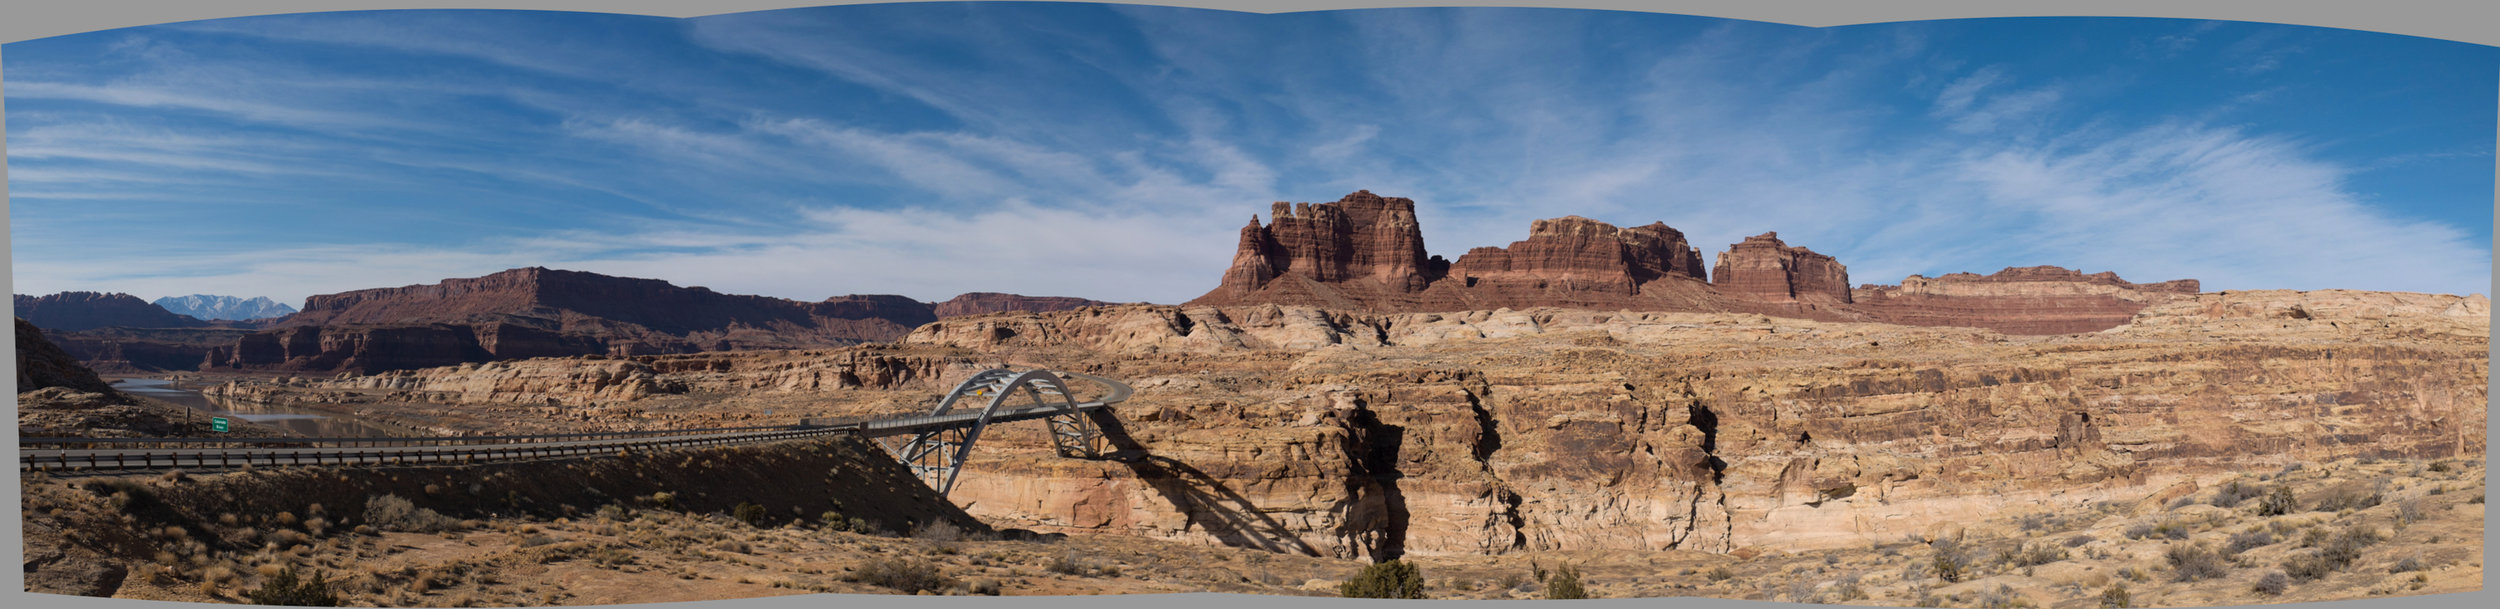 The bridge over the Colorado River where it becomes Lake Powell, Hite Crossing. Elevation 4000 feet.